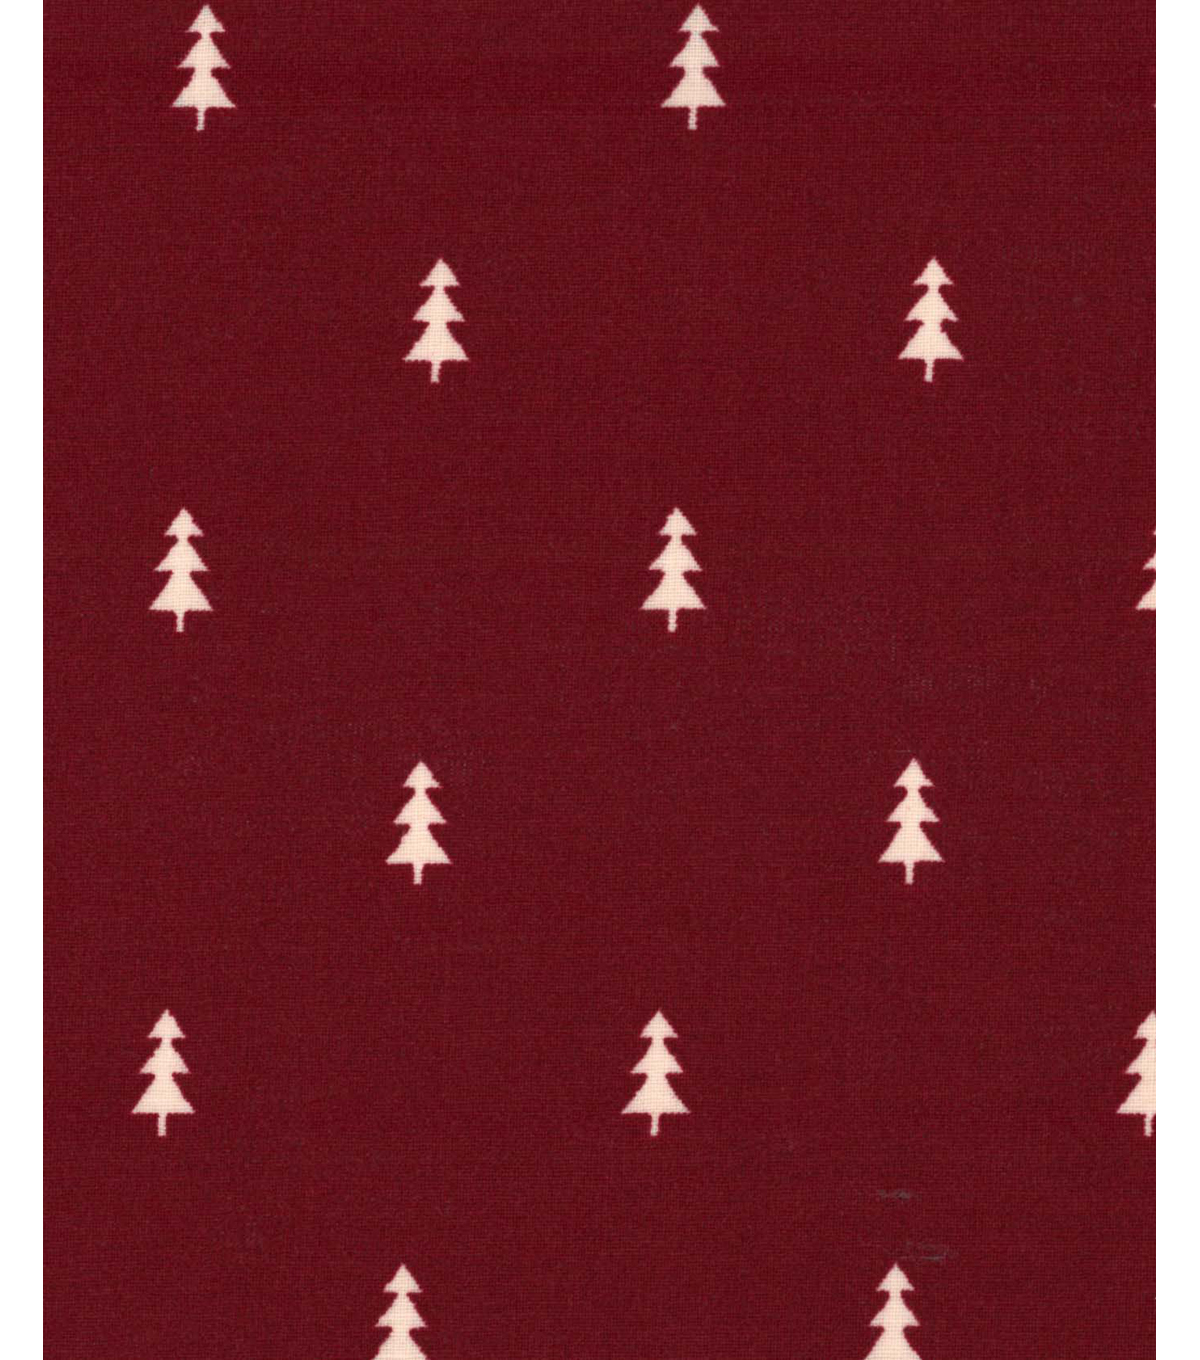 Holiday Showcase Christmas Cotton Fabric 43\u0027\u0027-Mini Christmas Trees on Burgundy